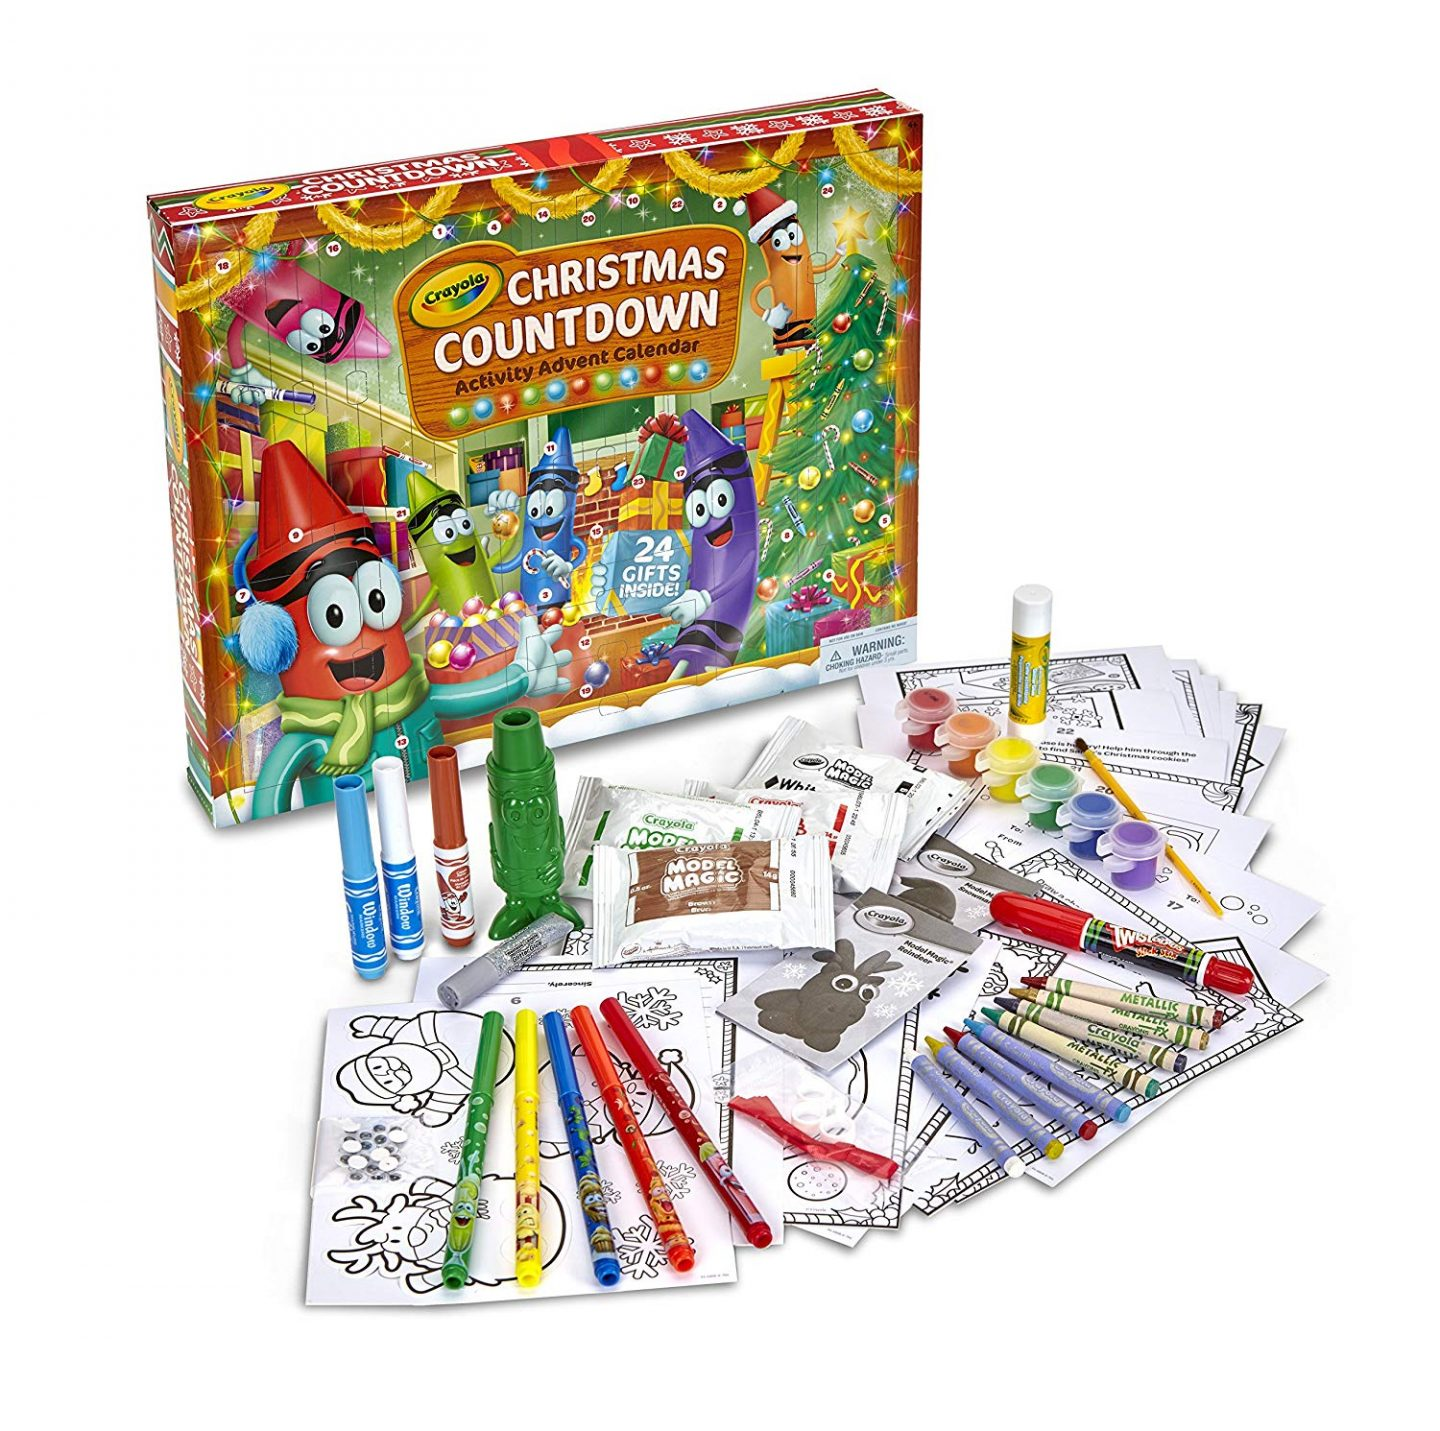 Crayola Holiday Advent Calendar Crafts